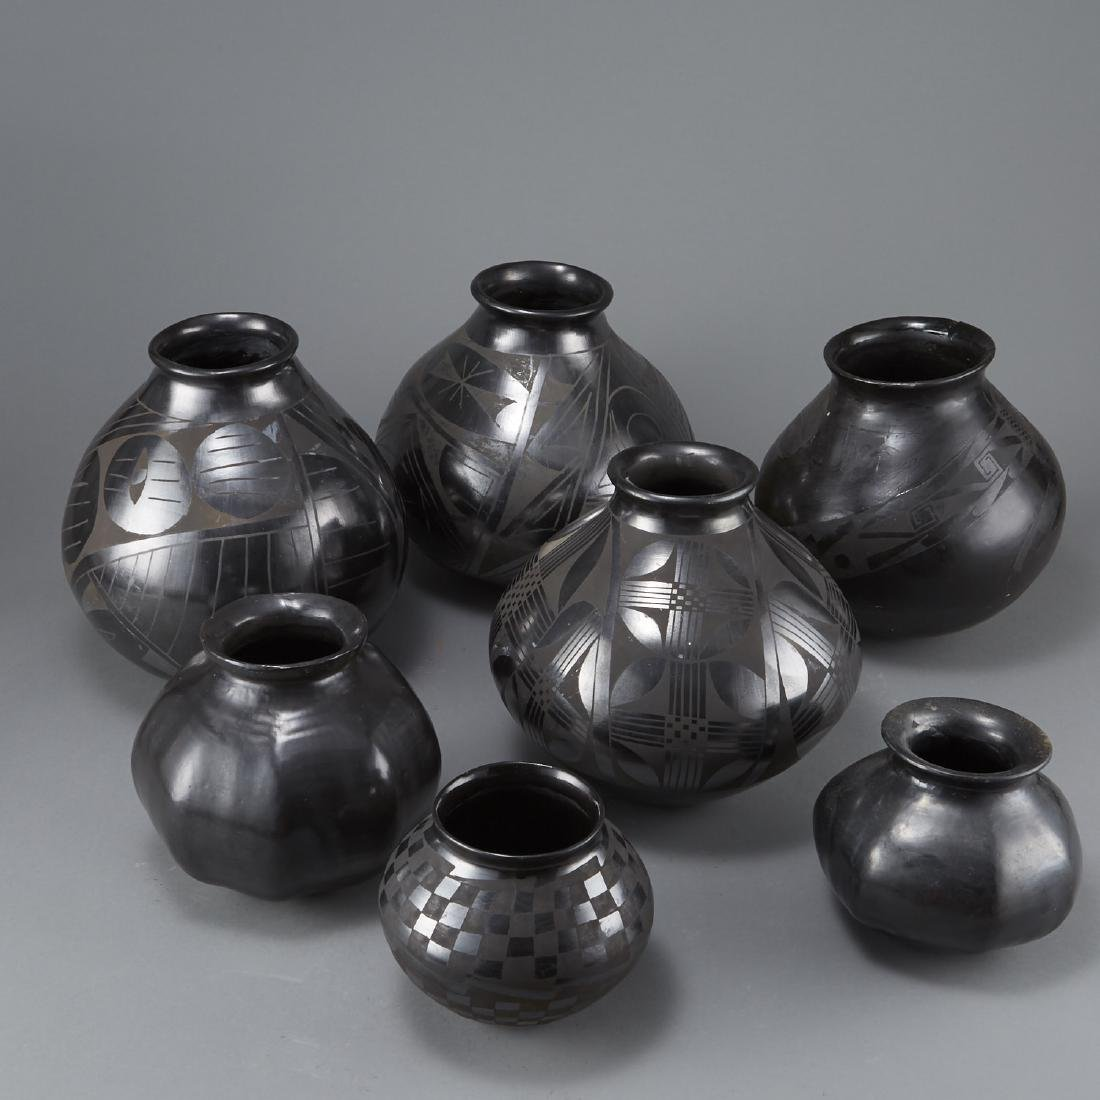 Group of 7 Pueblo Blackware Pots - 4